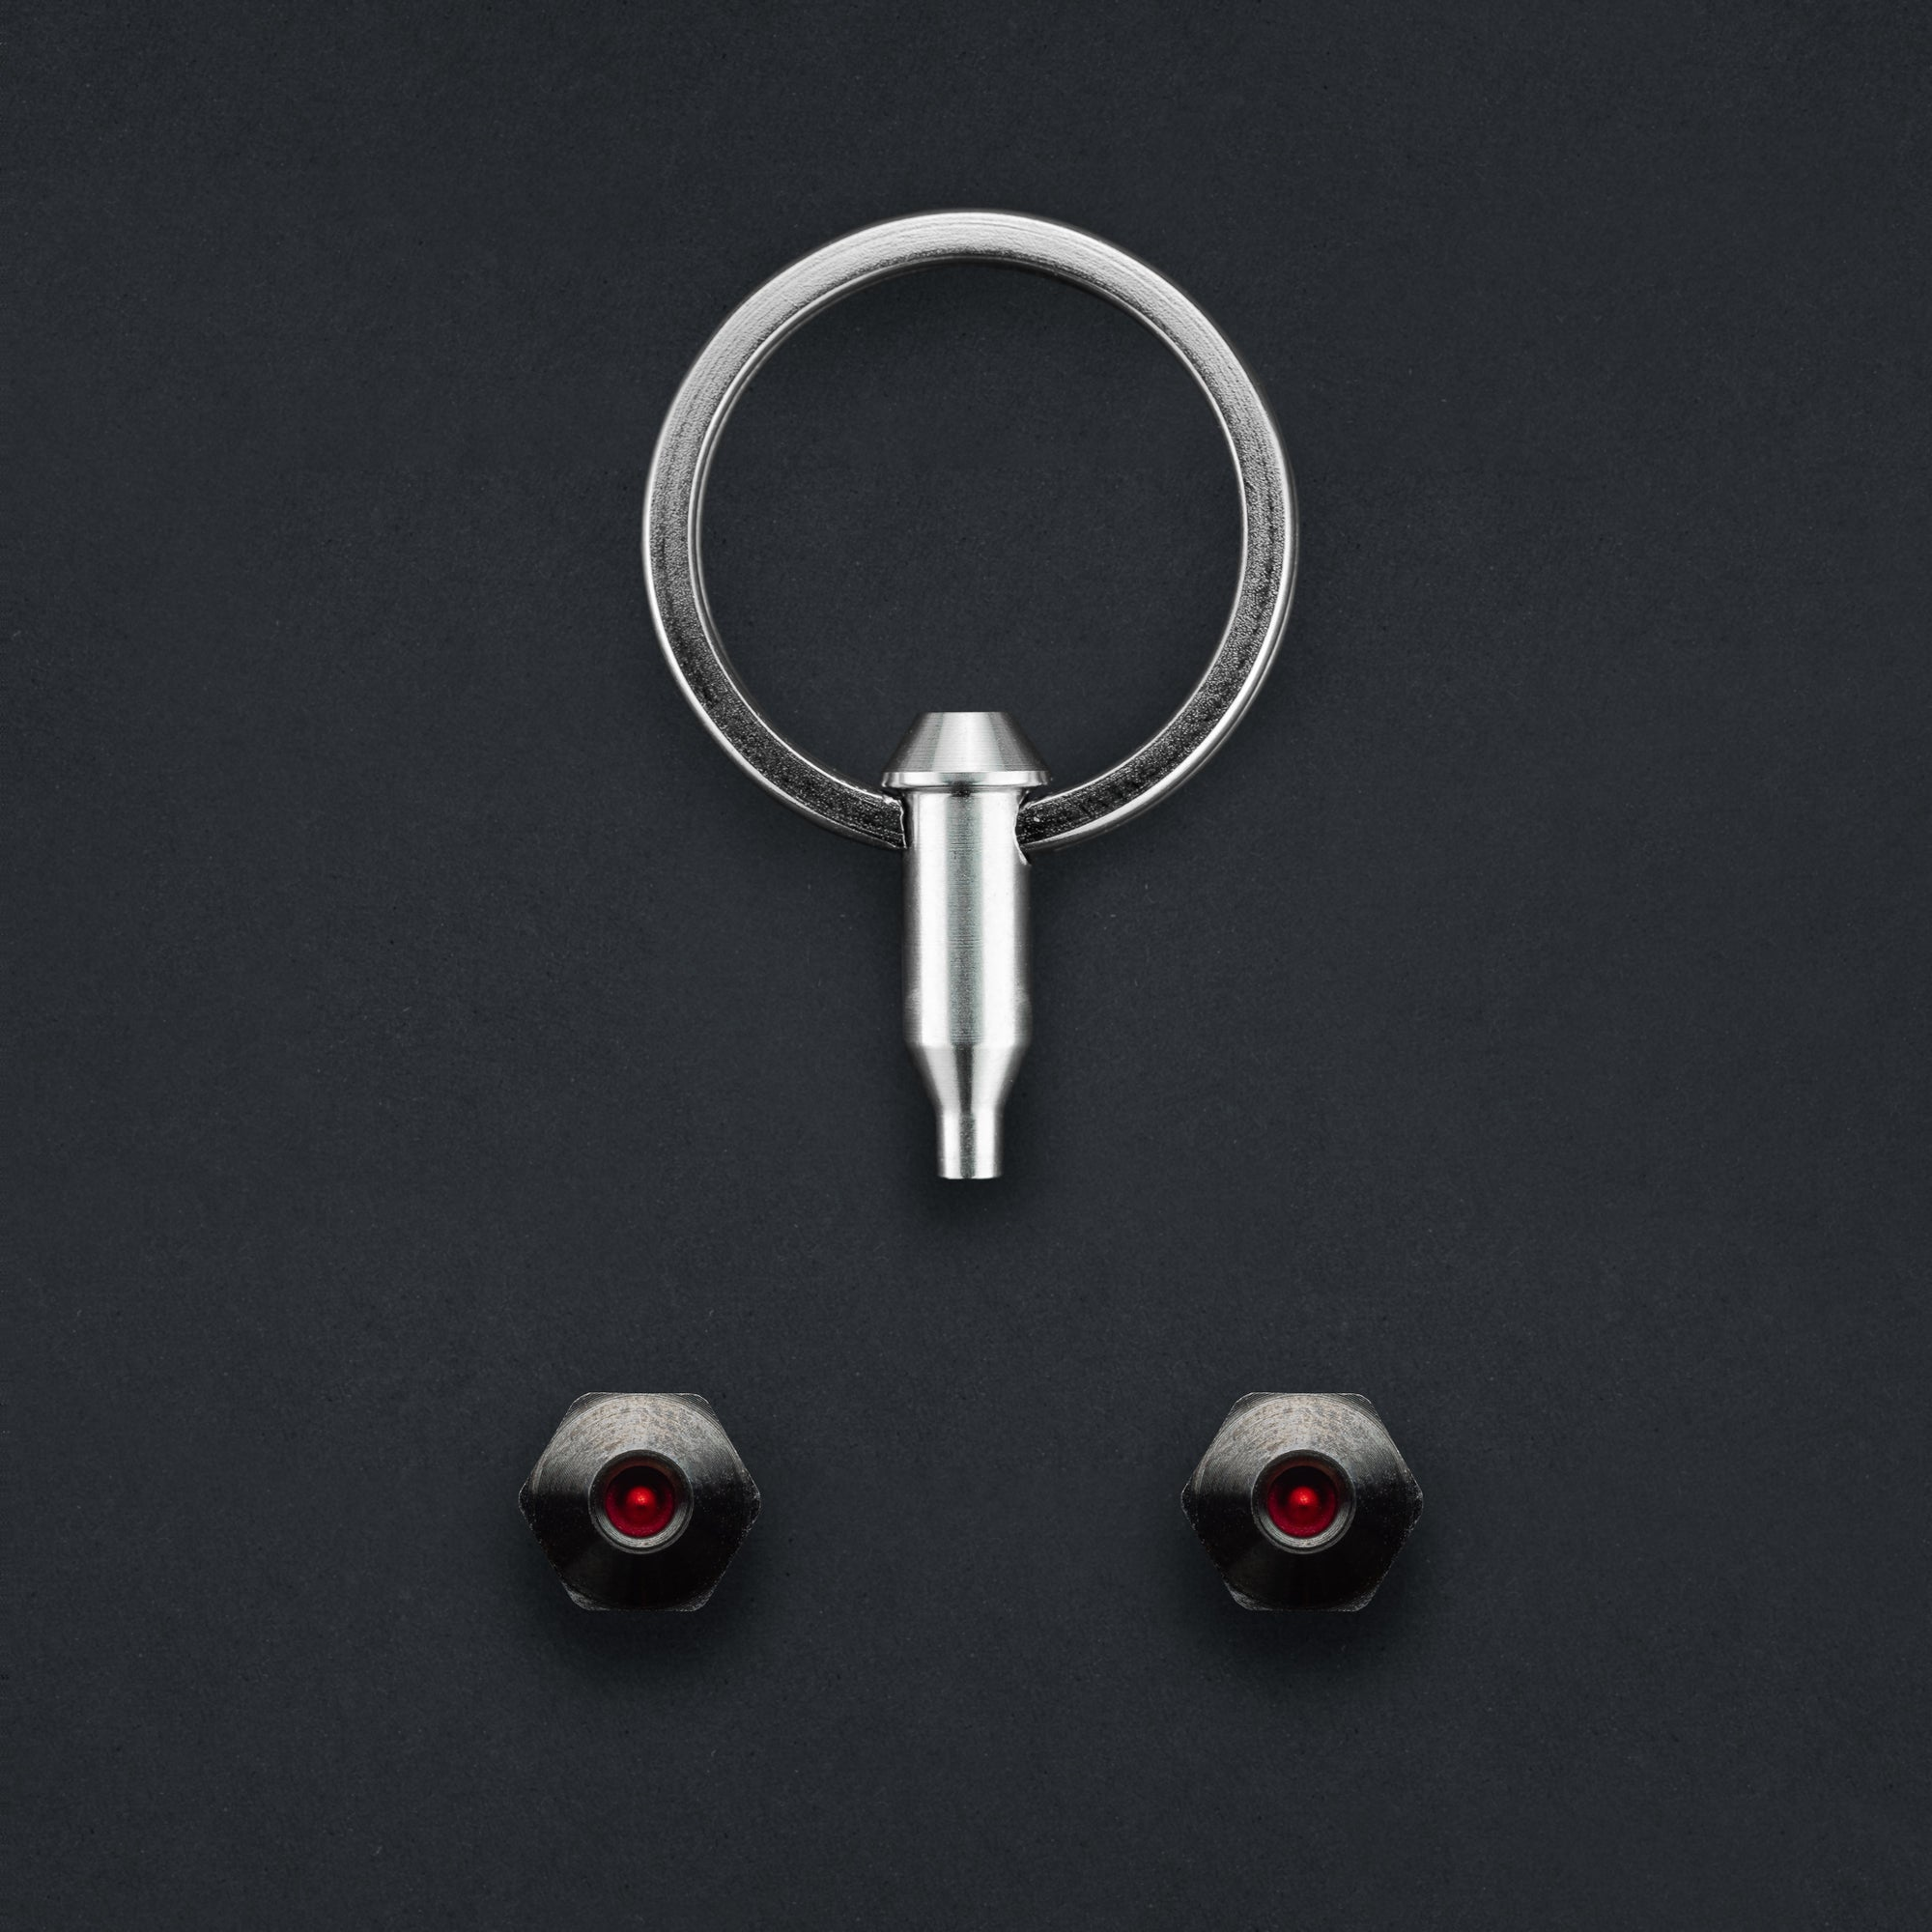 Hexlox Saddle Lock Security Set - Black Collection